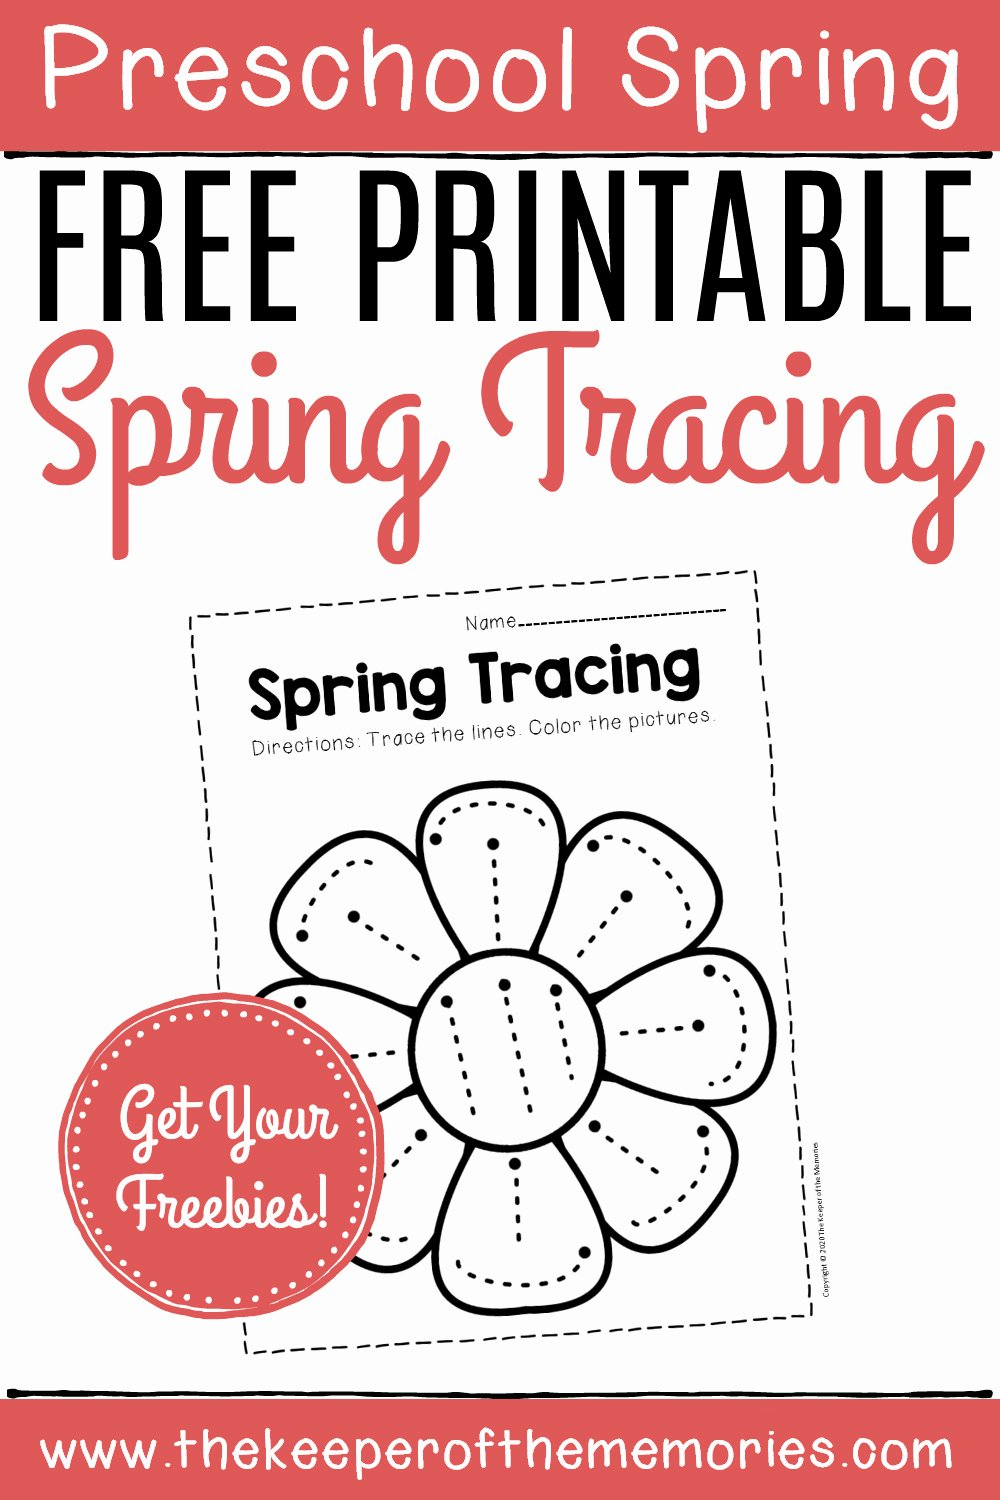 Tracing Worksheets for Preschoolers top Free Printable Tracing Spring Preschool Worksheets the